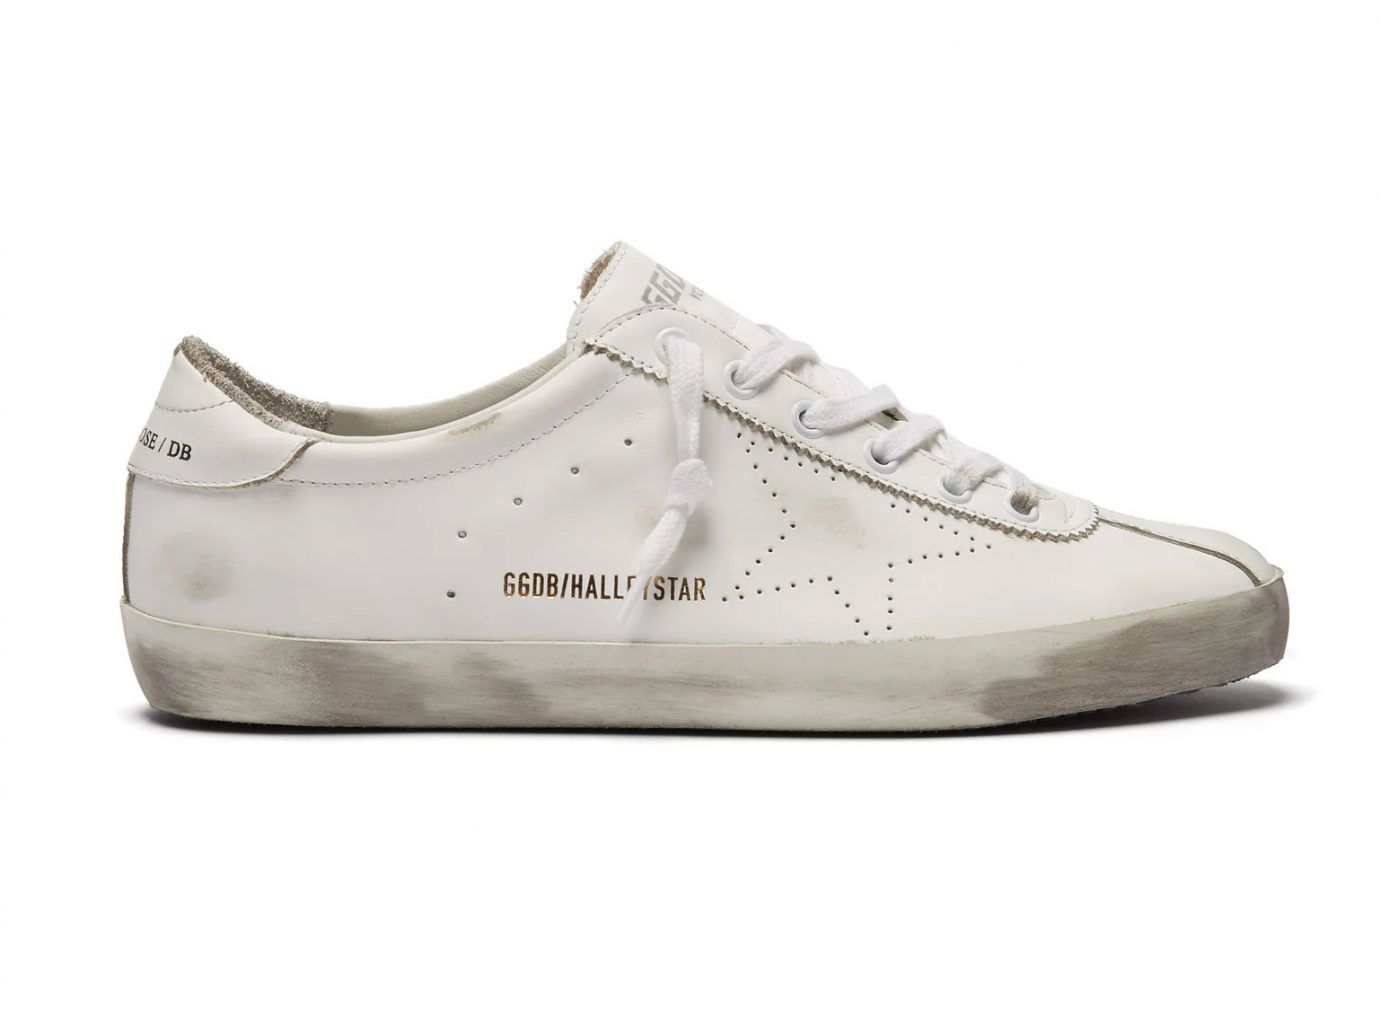 Golden Goose Halleystar low-top leather trainers